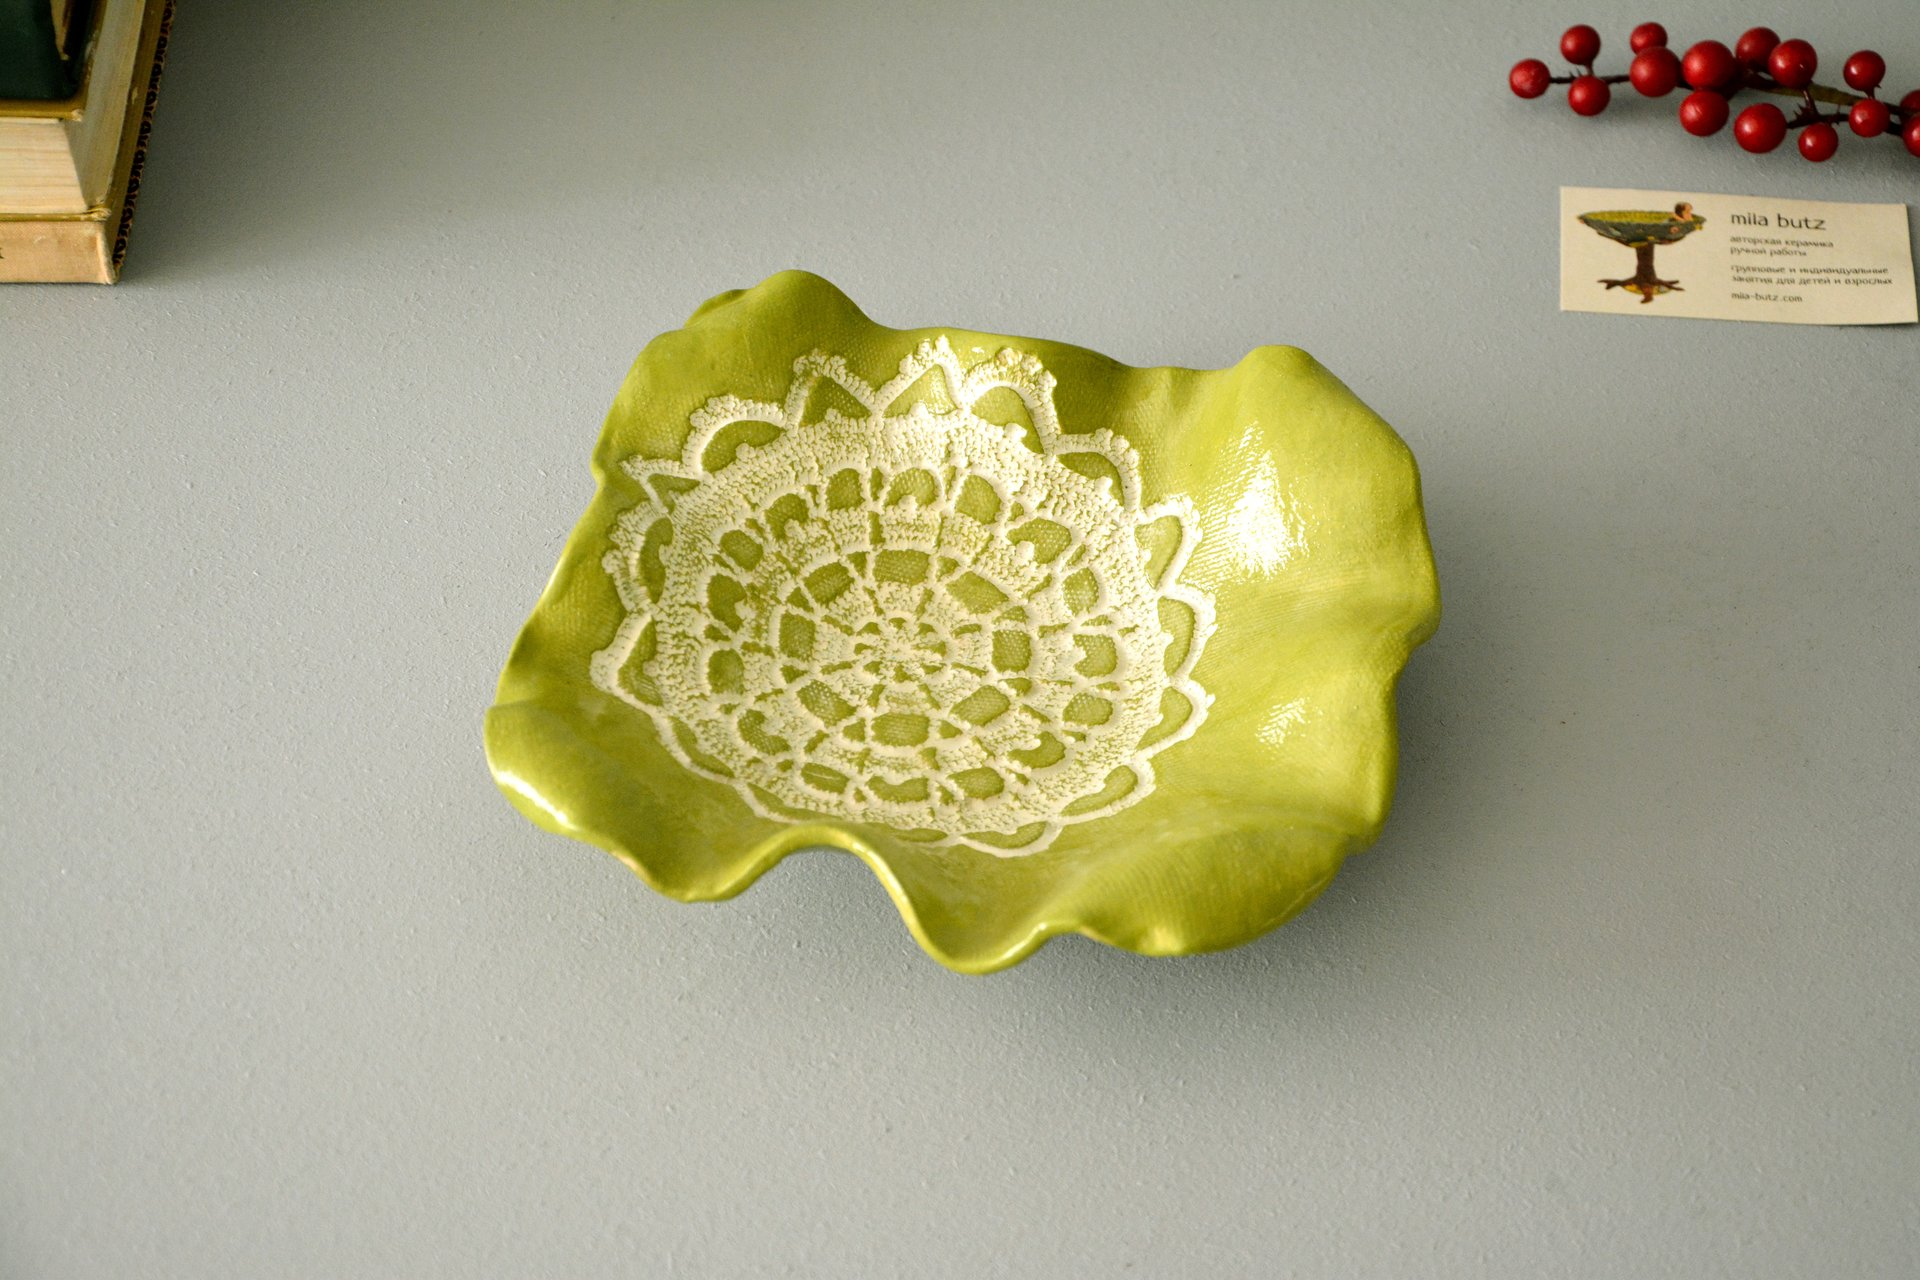 Green ceramic green square dish, dimensions 20 * 20 cm, height - 5,5 cm, photo 1 of 3.